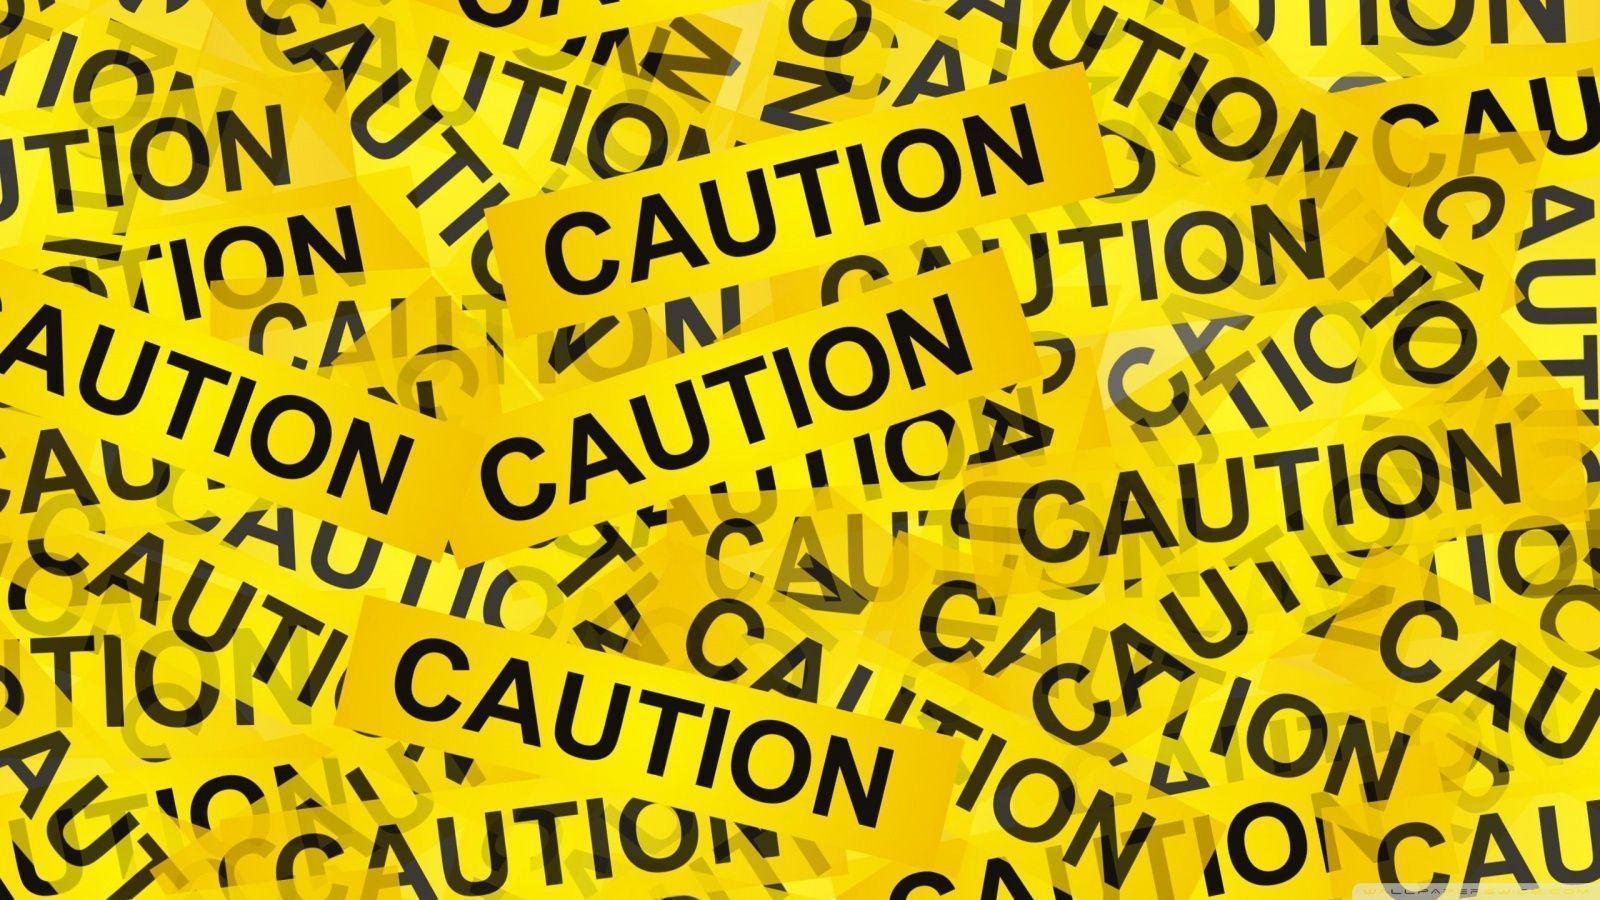 Caution HD desktop wallpaper : High Definition : Fullscreen : Mobile